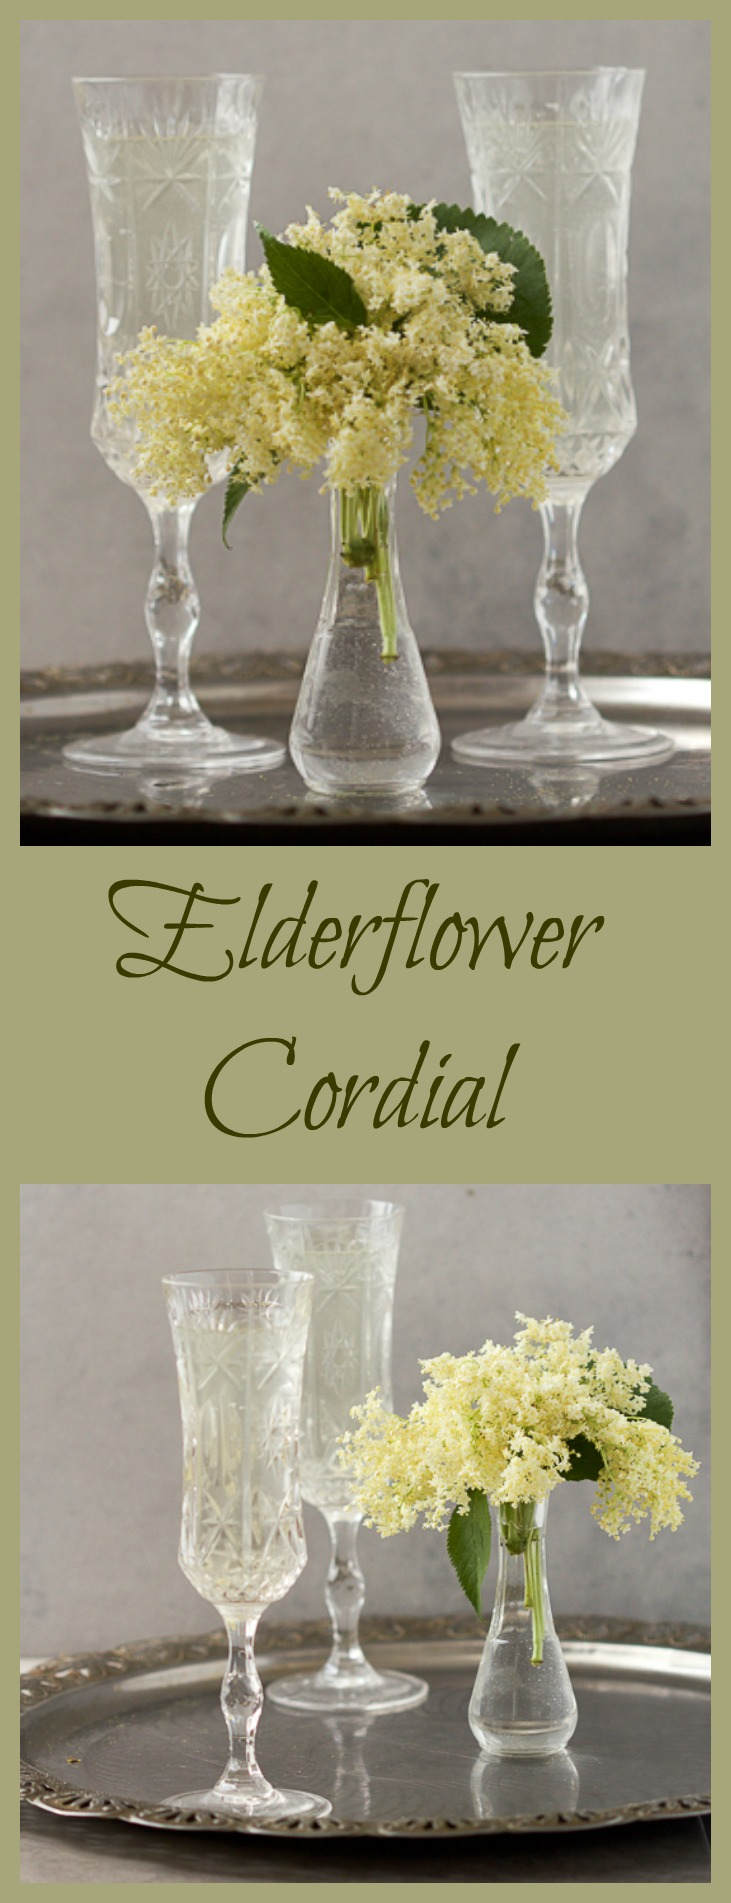 Elderflower cordial (aka zova) is an invigorating, and fresh, homemade juice made from the elderberry tree flowers. If you find regular juices too heavy and water too light, then the elderflower cordial is the drink for you.